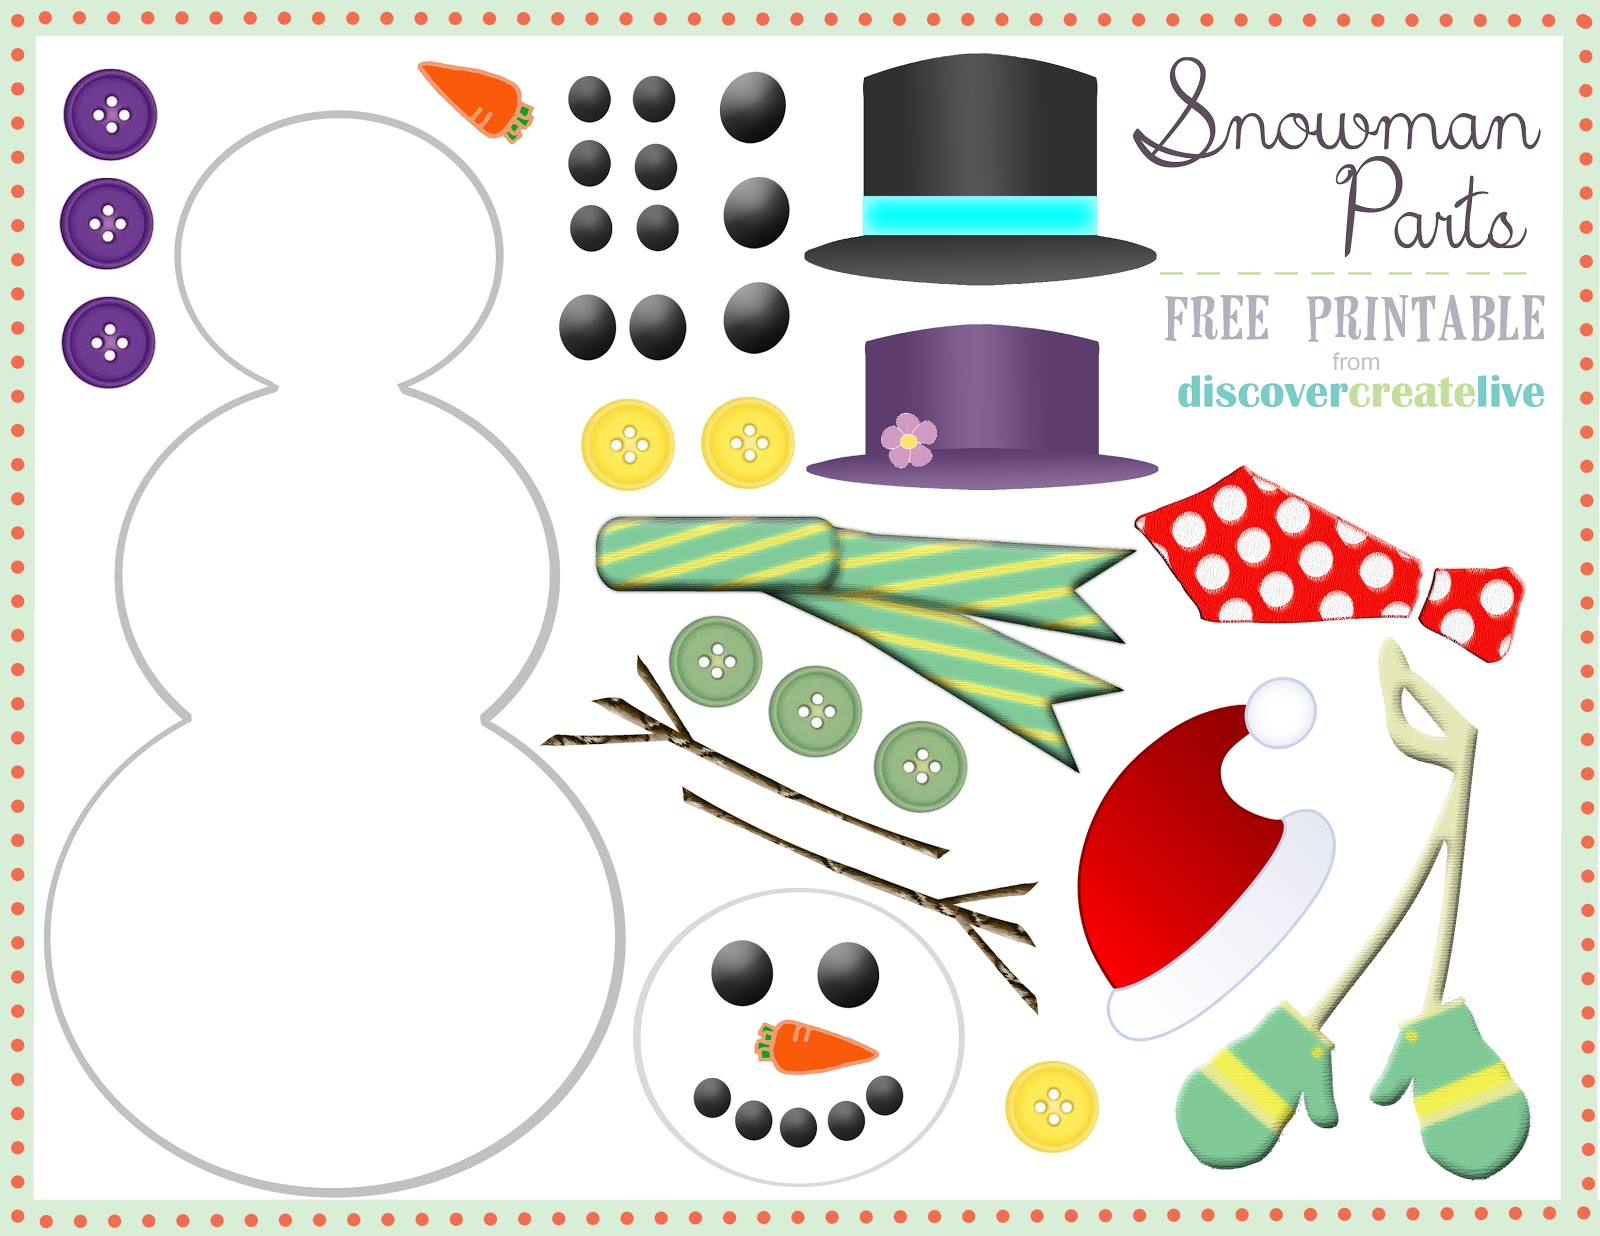 Magic image within snowman parts printable